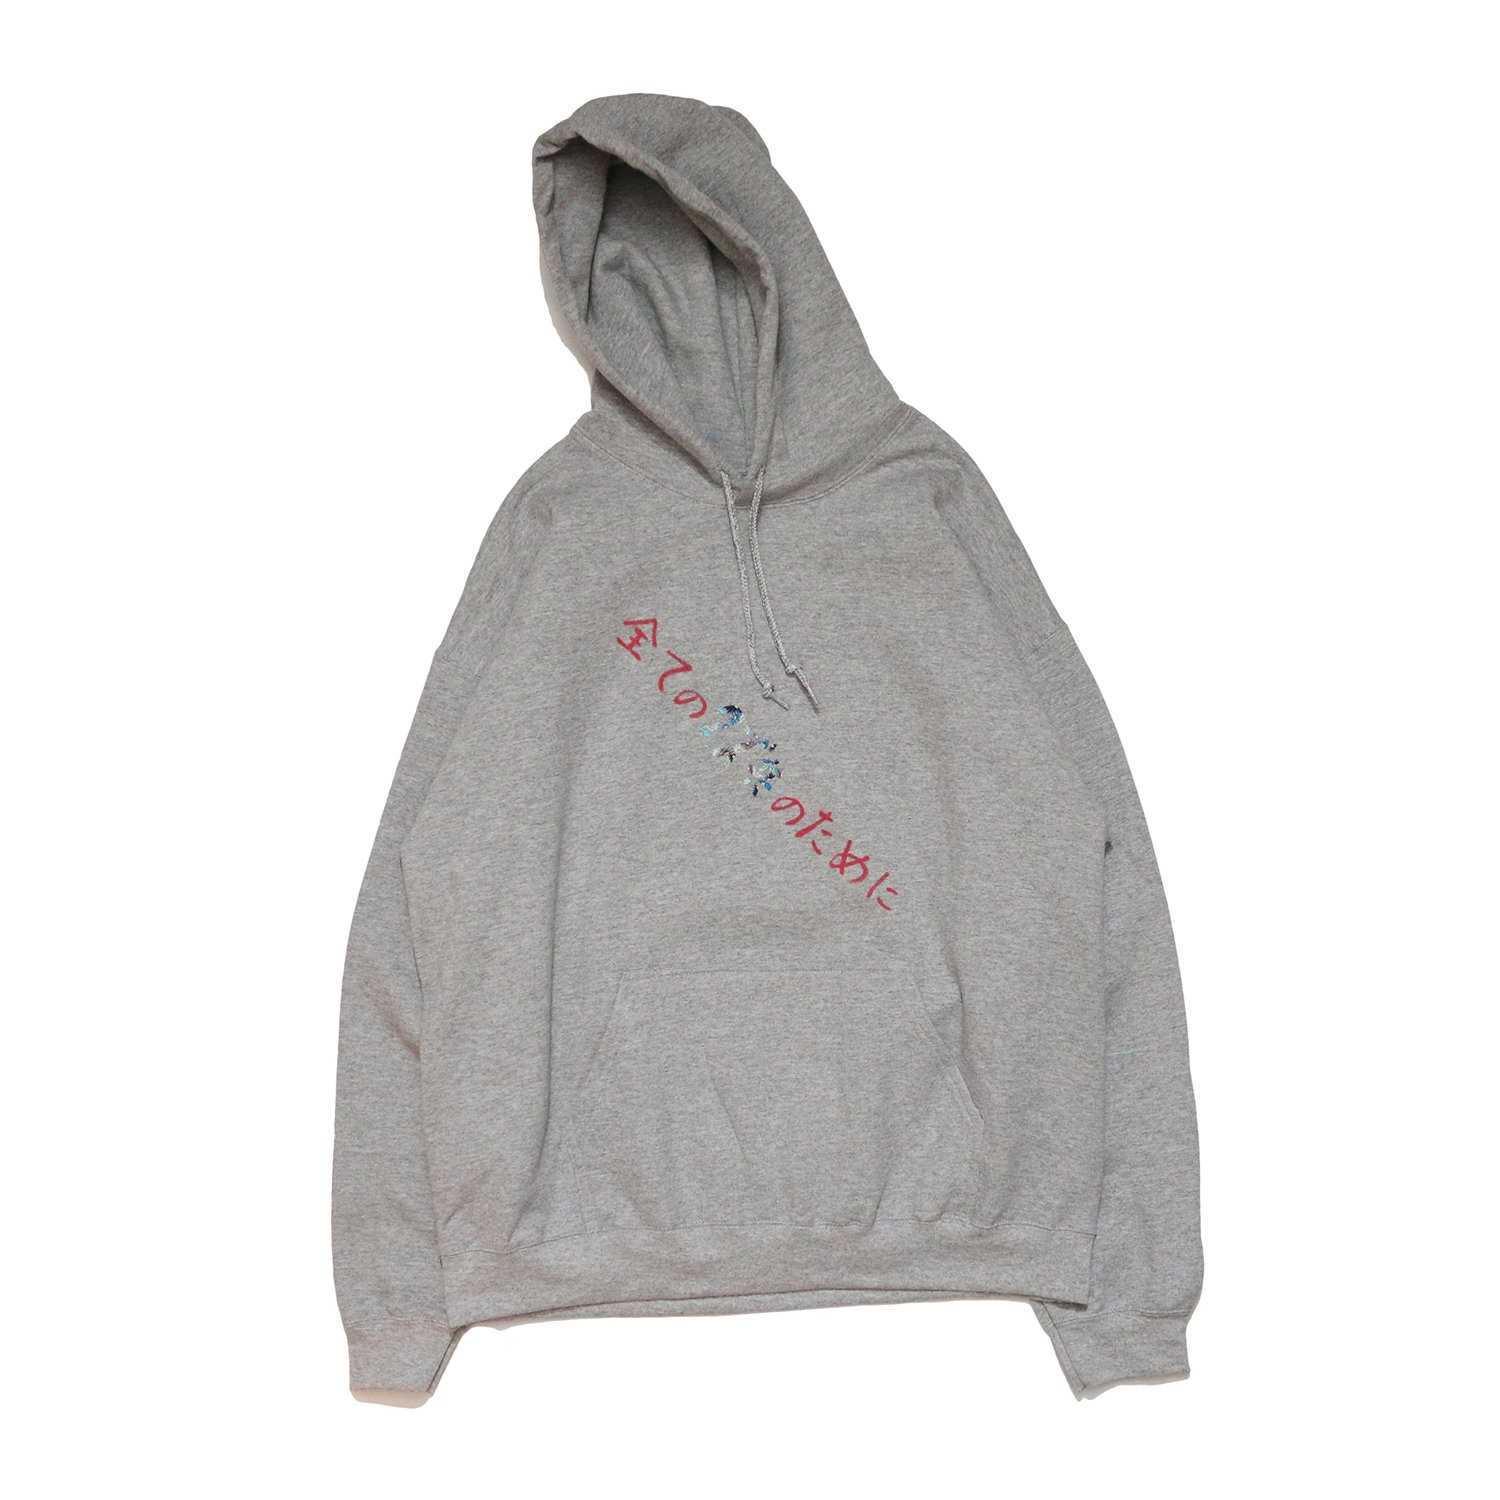 <img class='new_mark_img1' src='https://img.shop-pro.jp/img/new/icons8.gif' style='border:none;display:inline;margin:0px;padding:0px;width:auto;' />BIN 10th Parka